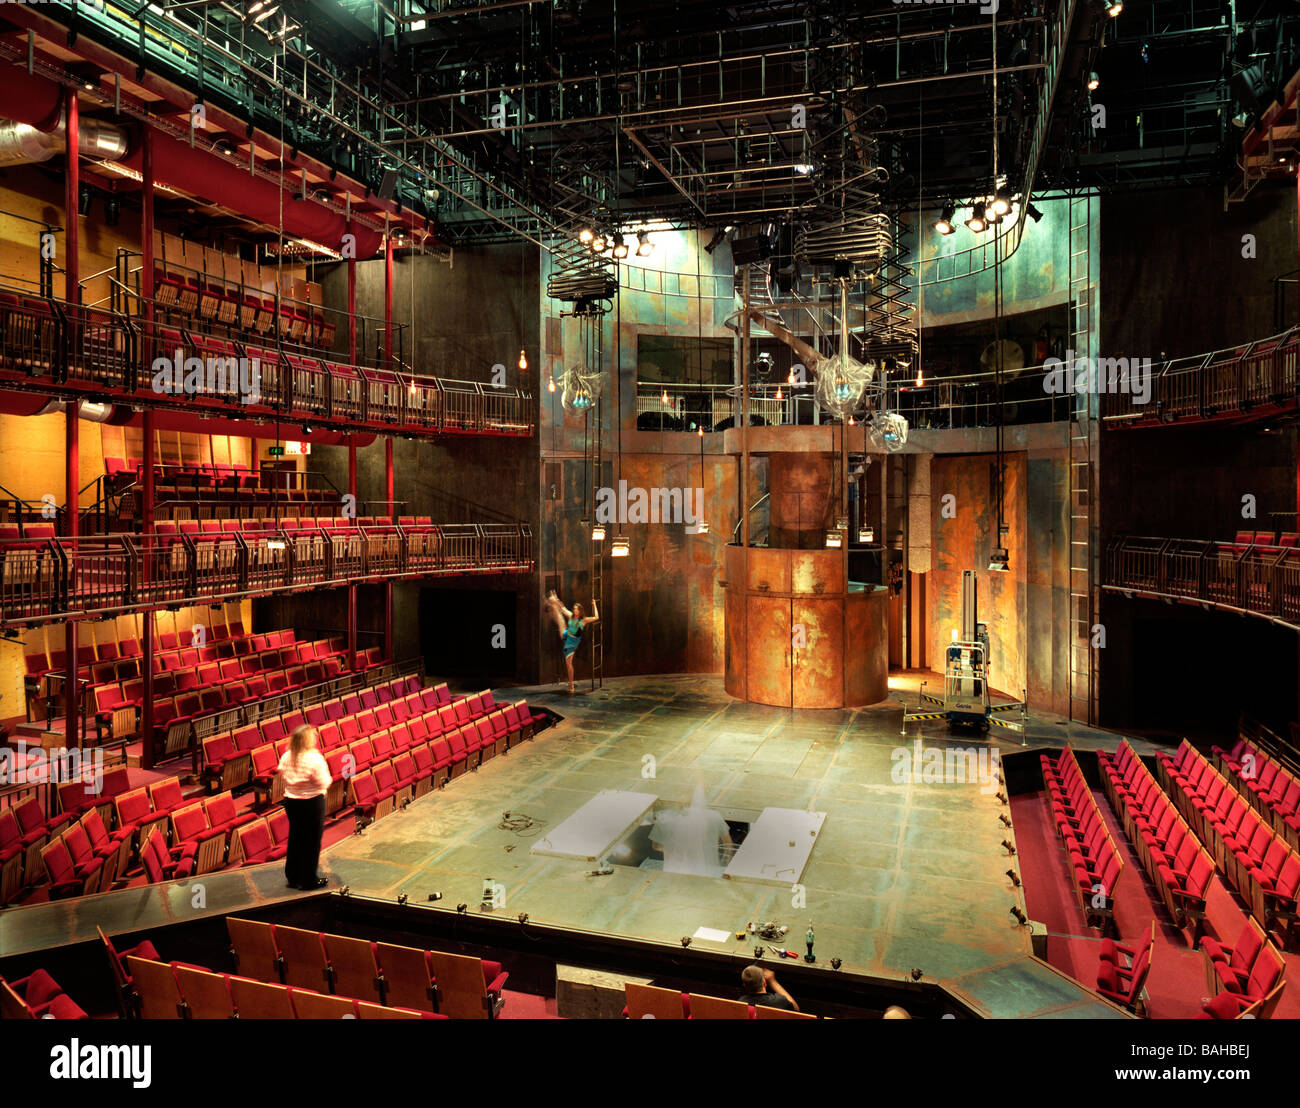 Rsc Courtyard Theatre, Stratford Upon Avon, United Kingdom ...